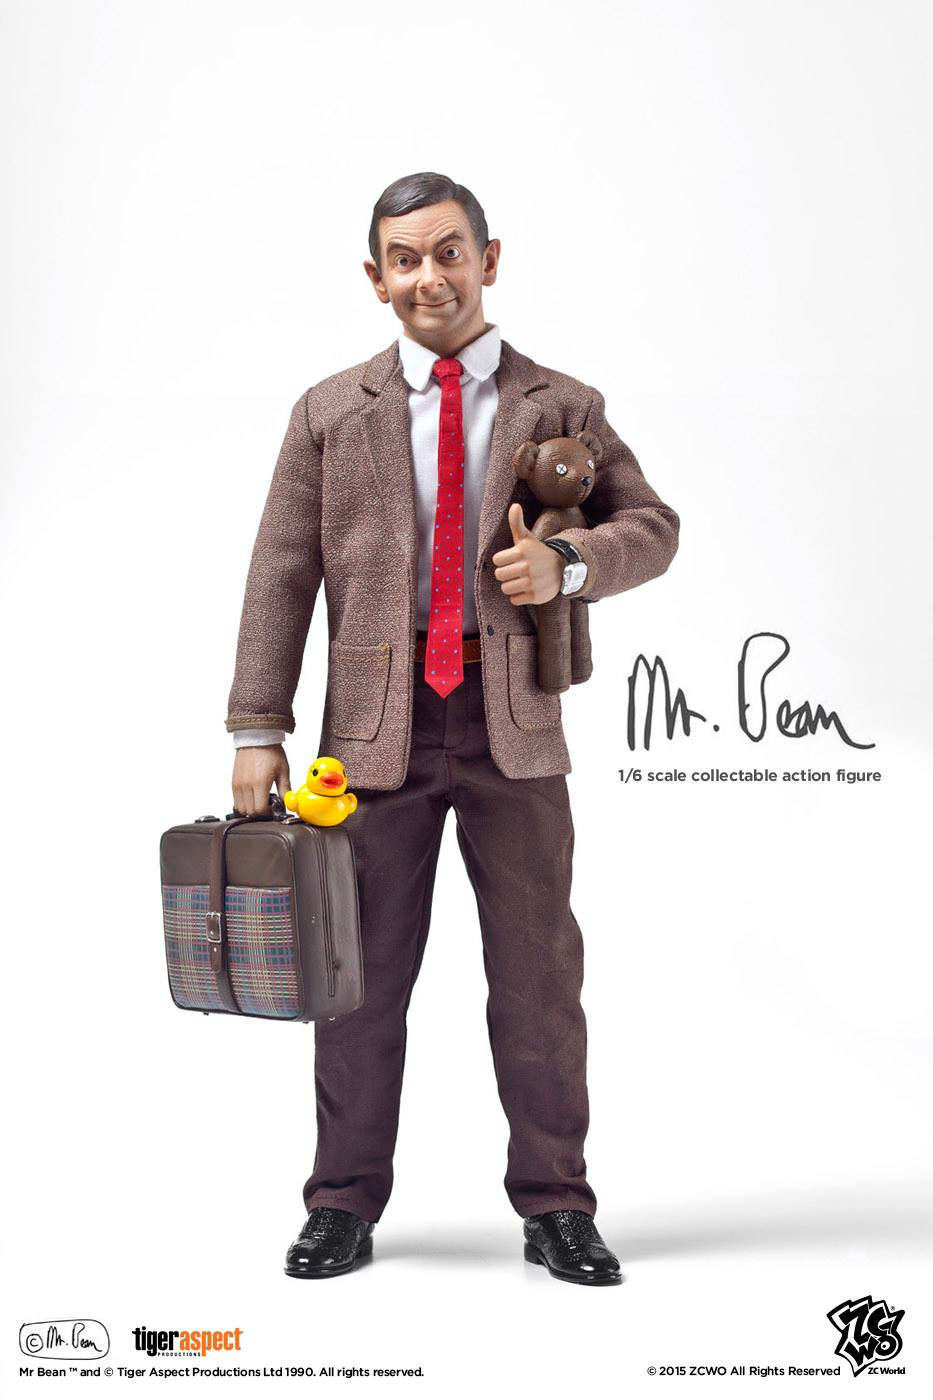 [ZCWO] Mr. Bean - 1/6 scale 150241wo3dzoa8hb1zho8l